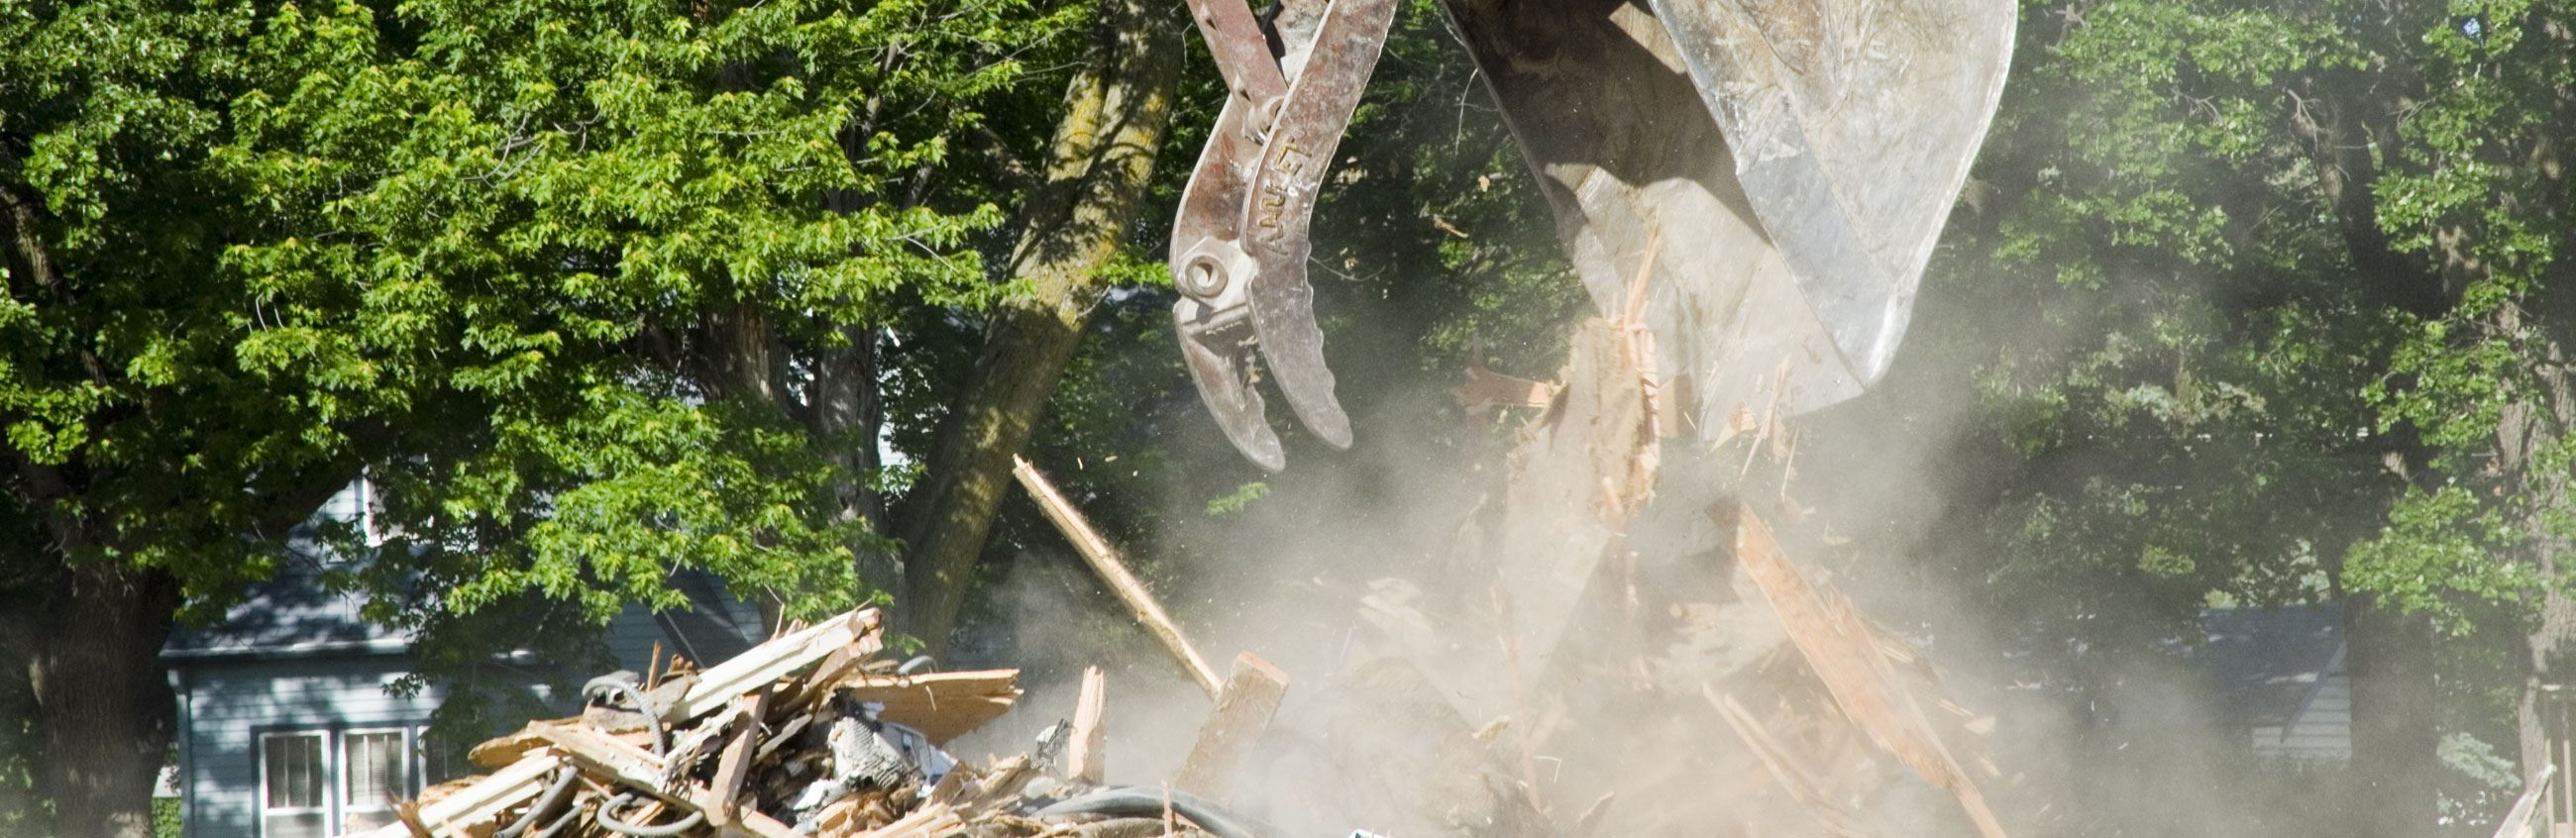 Backhoe Conducting Demolition